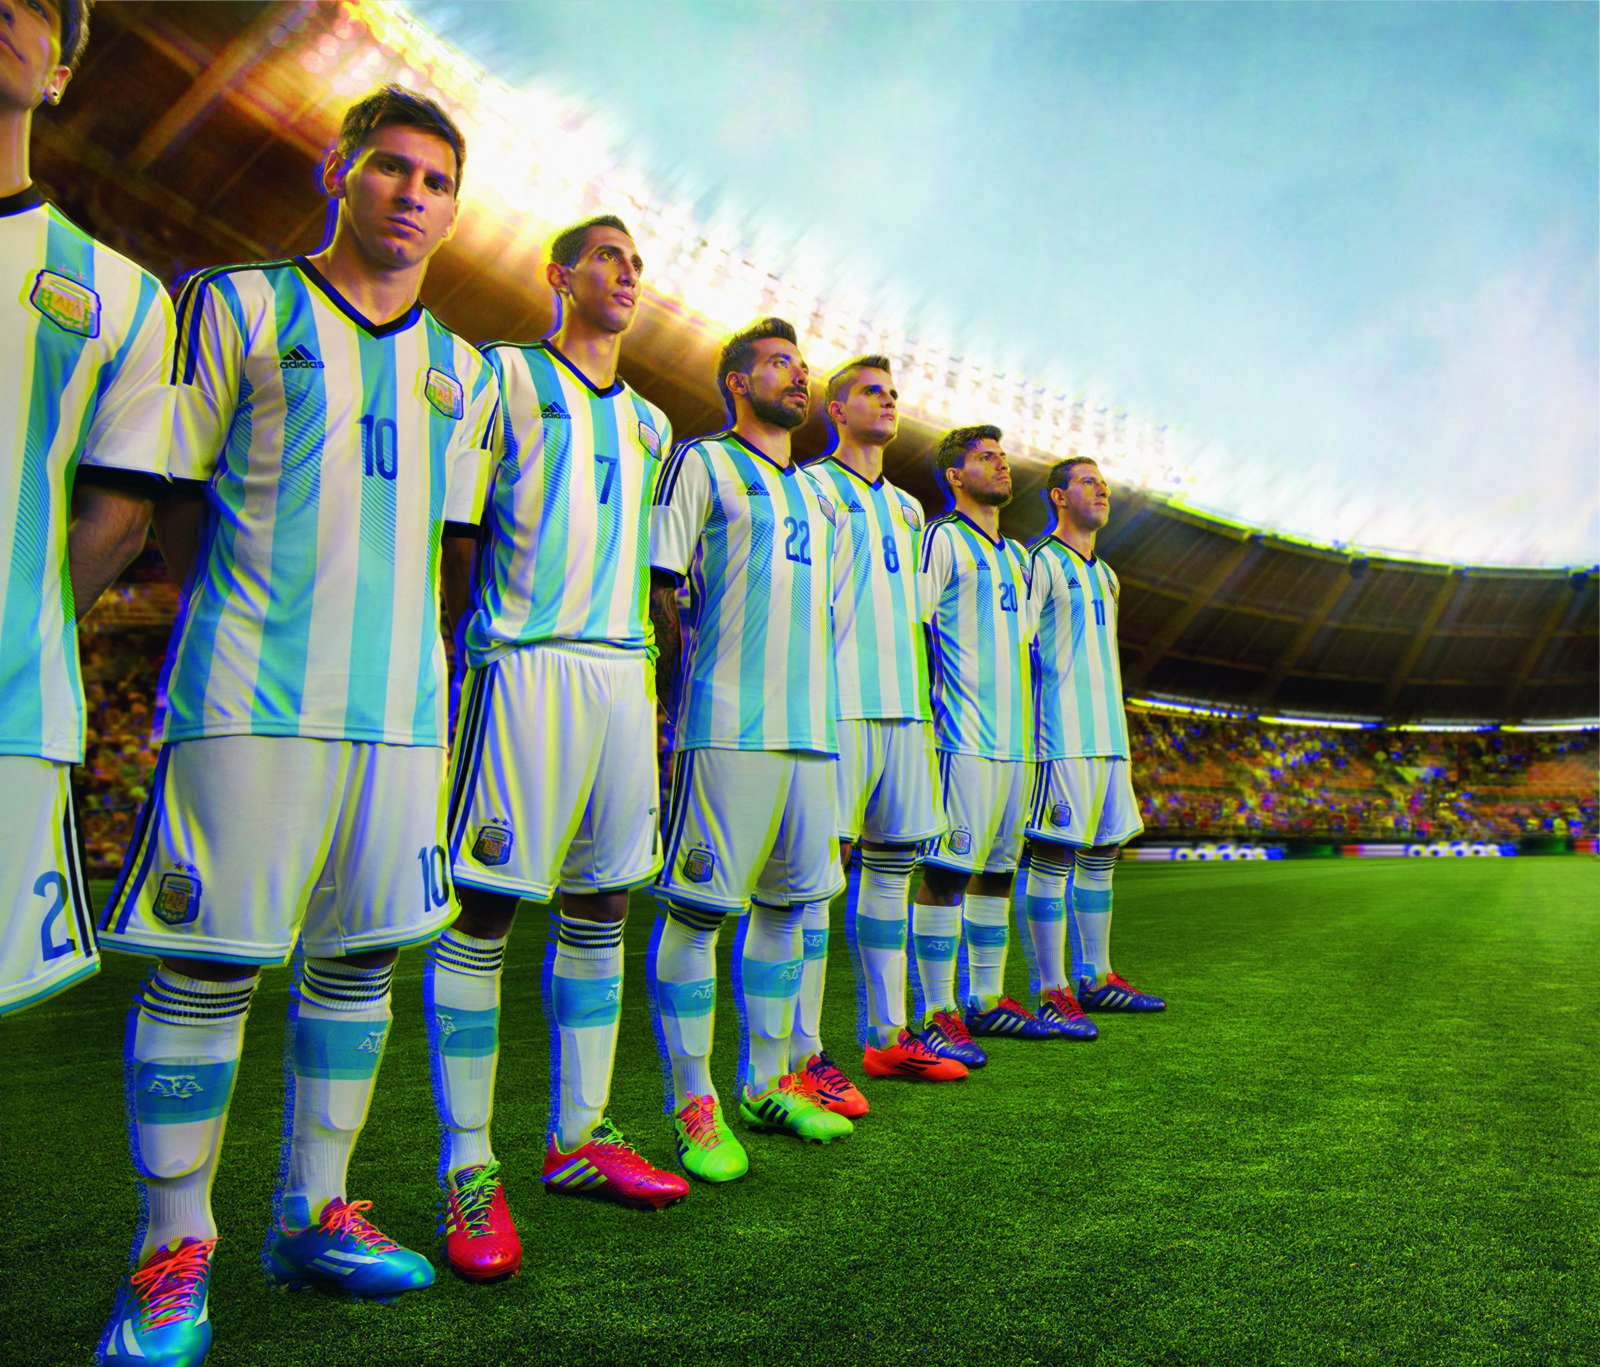 National Football Team 2014 Wallpaprs   Football HD Wallpapers 1600x1367